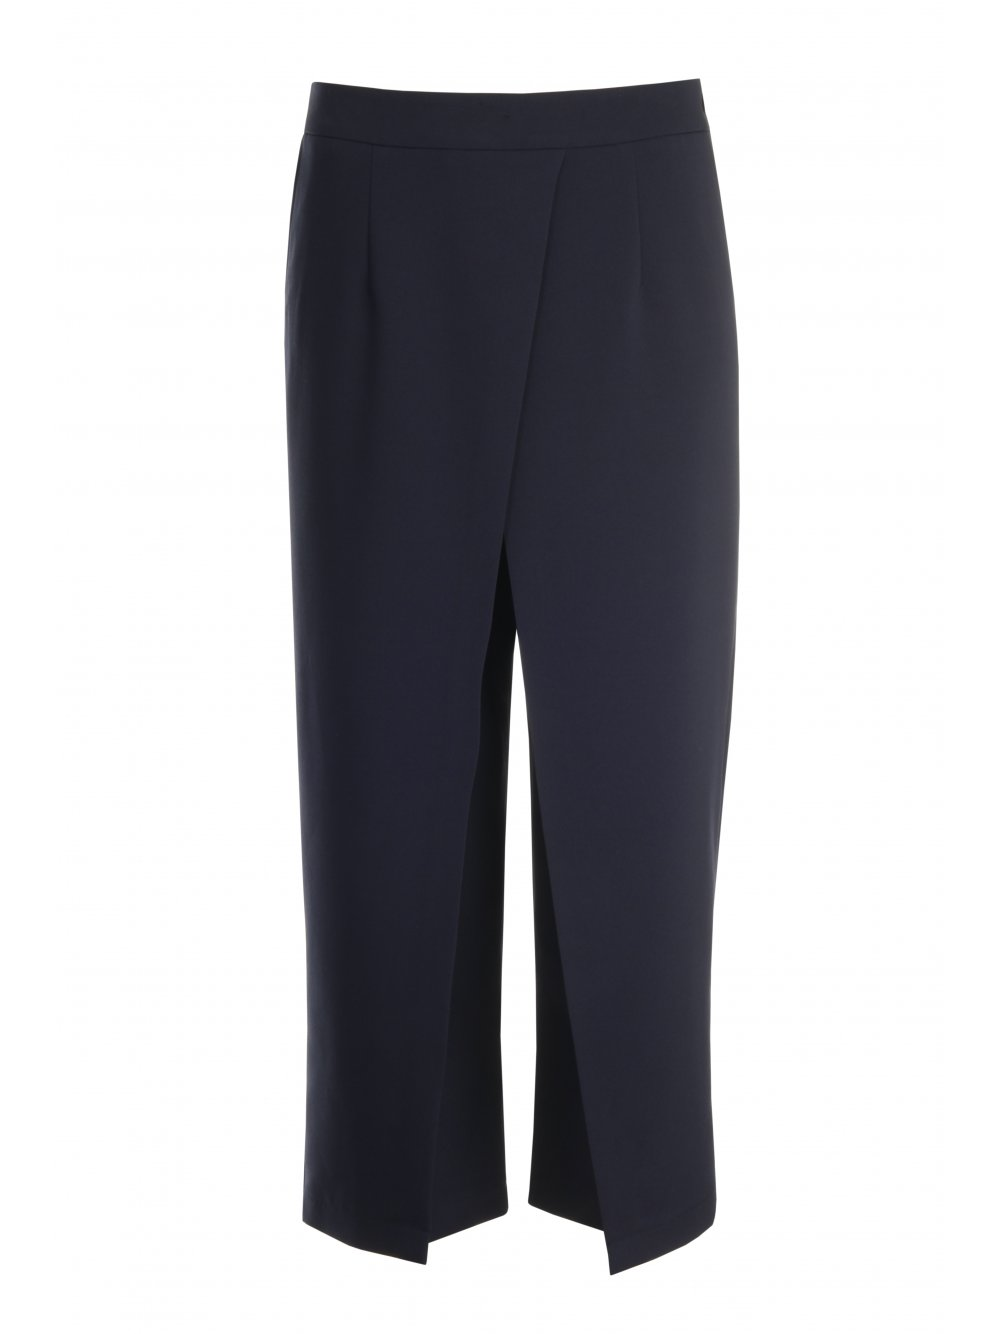 Navy Crossover Wrap Culottes - from Lavish Alice UK